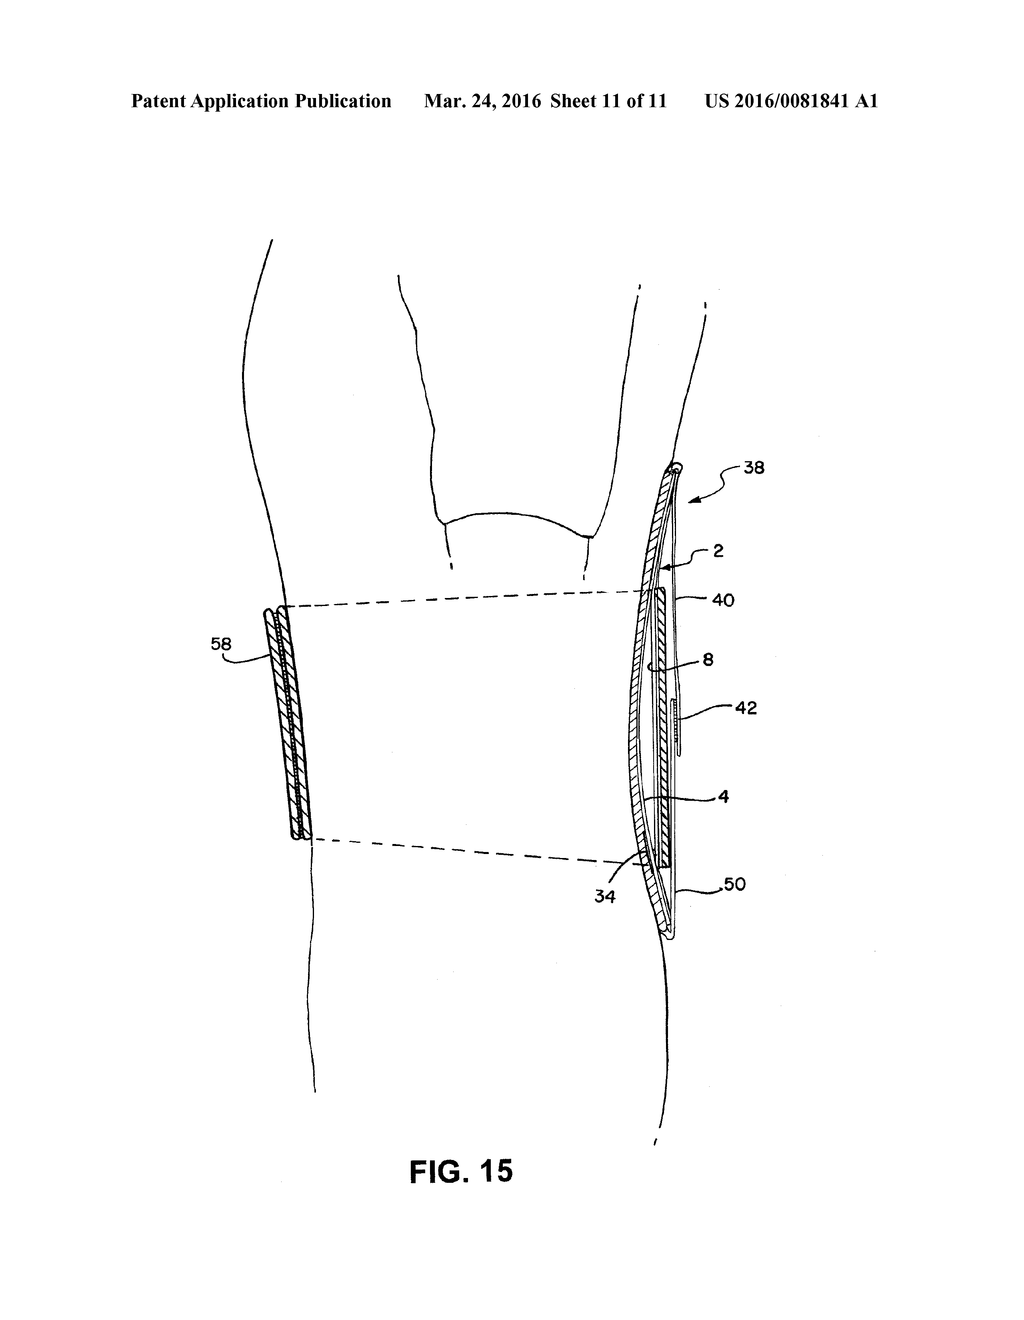 hight resolution of adjustable lordosis orthopedic insert for a back brace diagram schematic and image 12